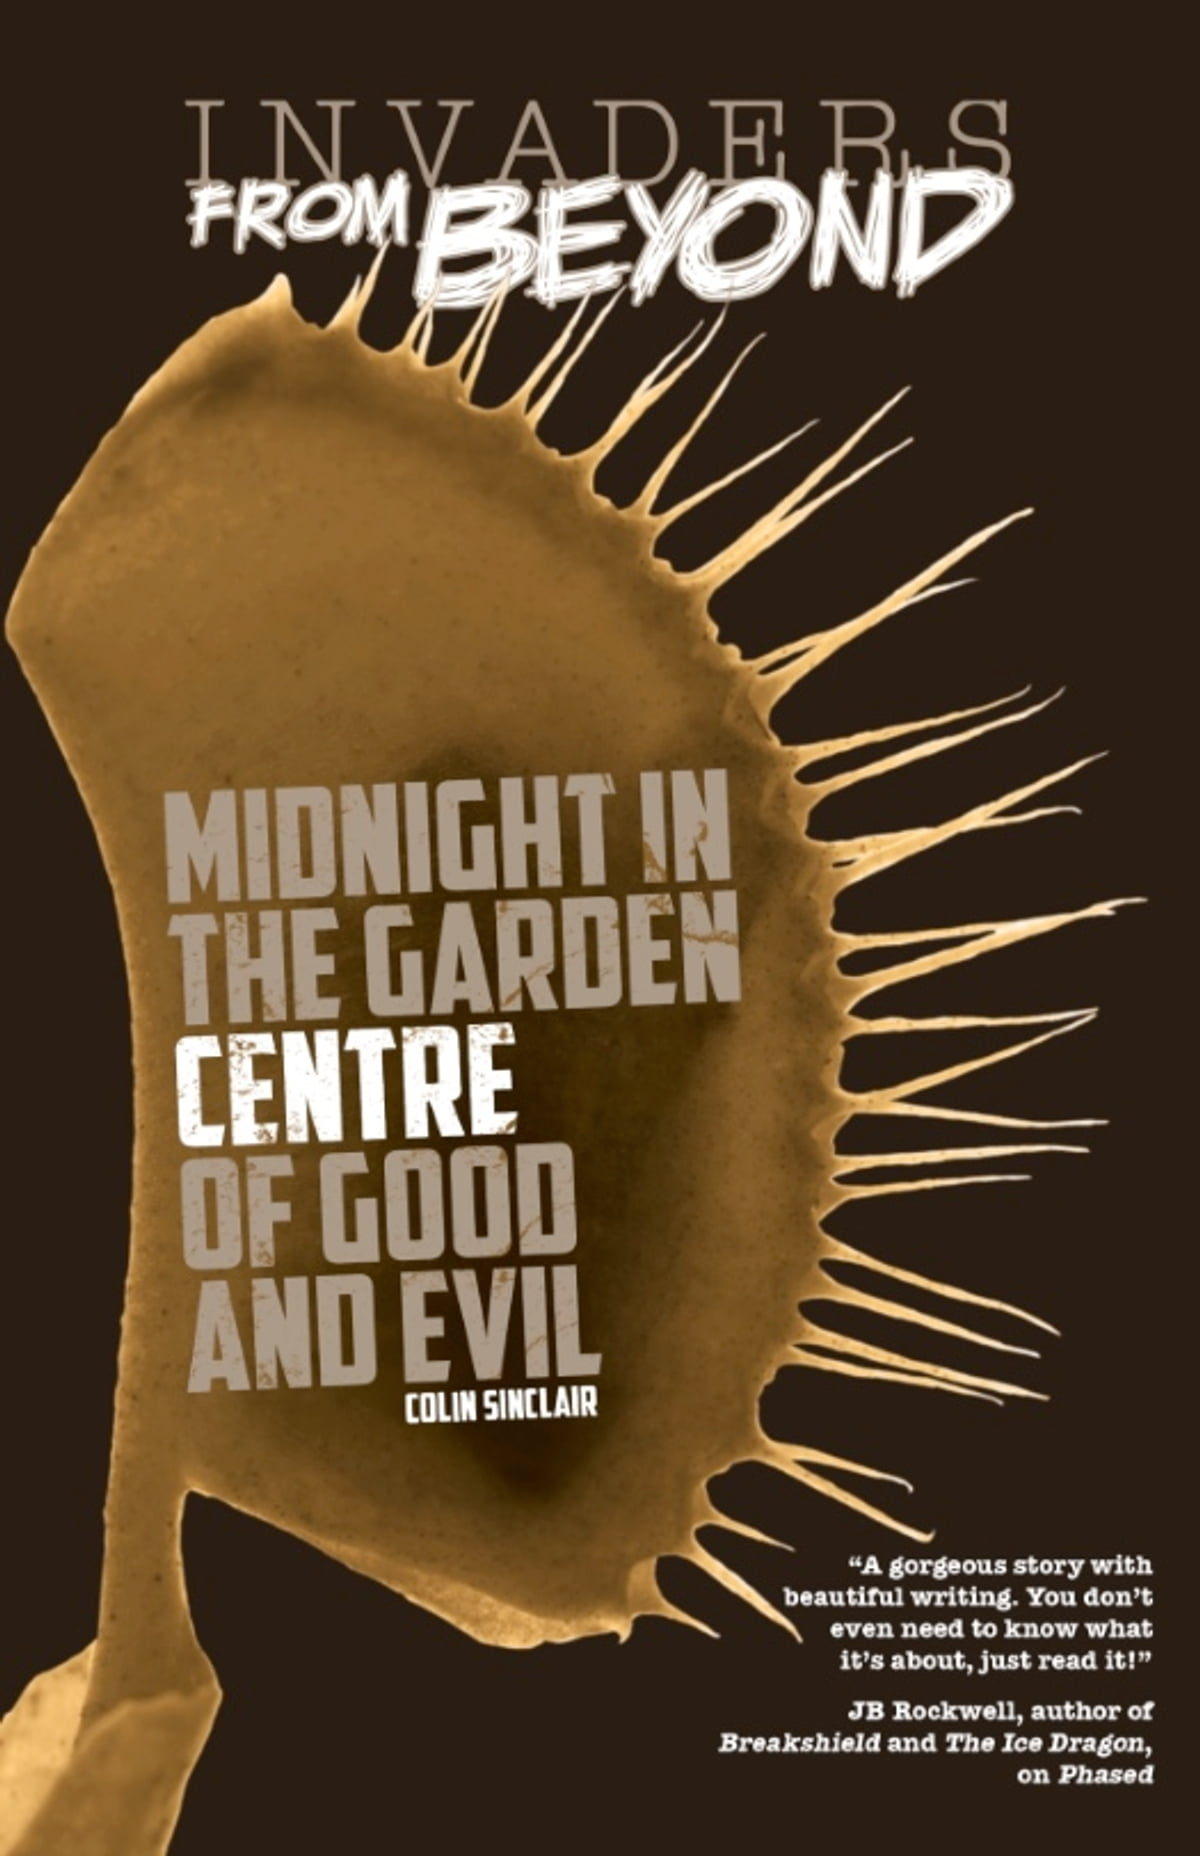 Midnight in the Garden Centre of Good and Evil eBook by Colin ...